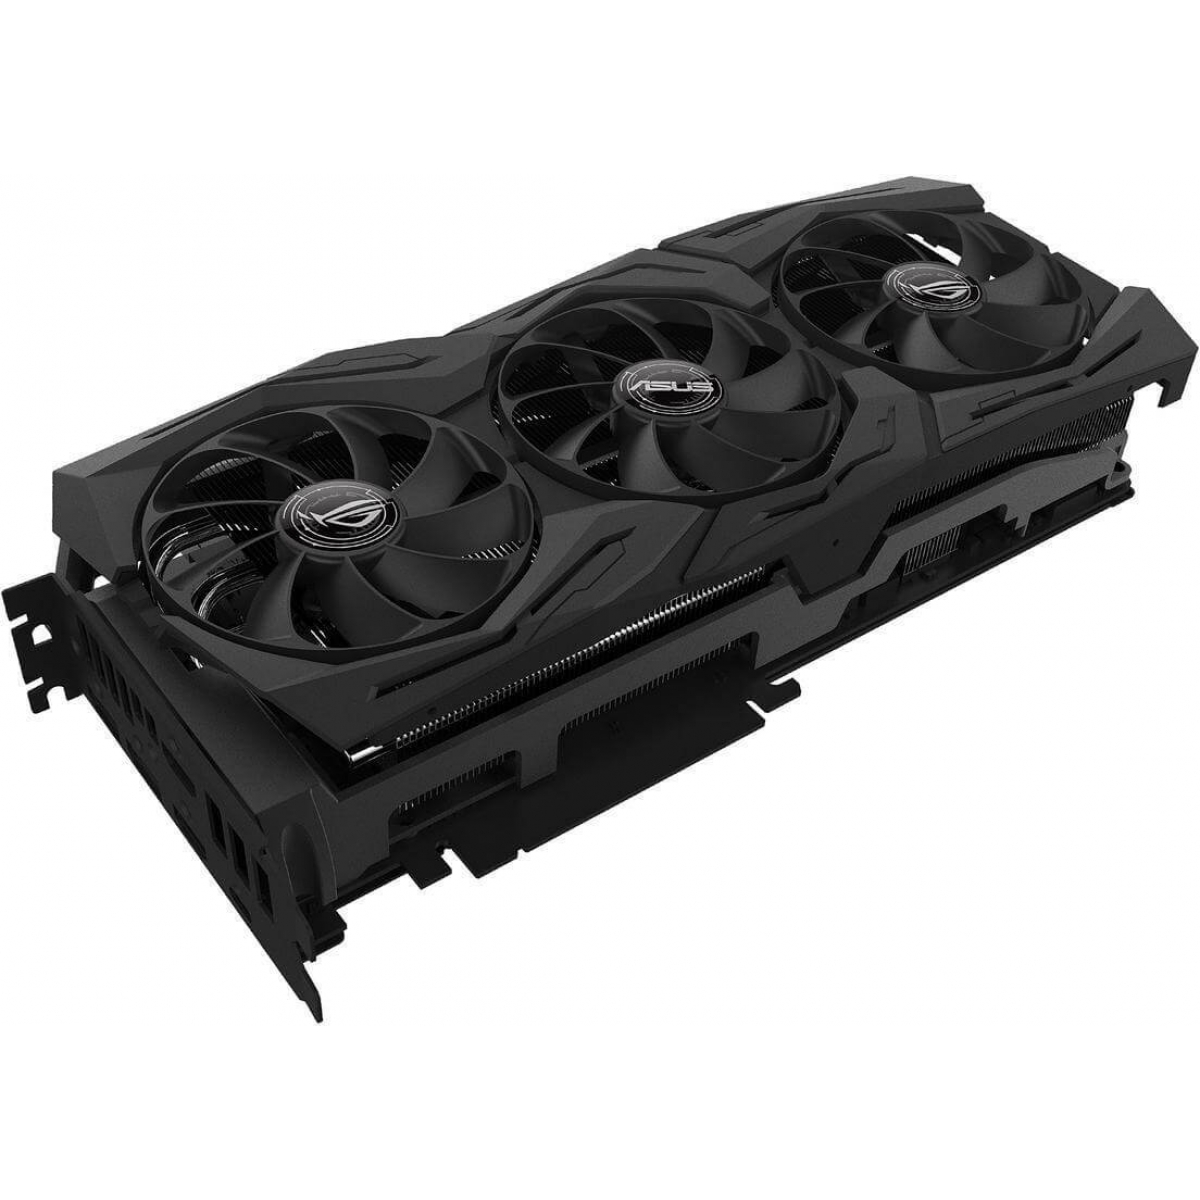 Placa de Vídeo Asus, Geforce, RTX 2080 Ti Advanced Rog Strix Gaming, 11GB, GDDR6, 352Bit, ROG-STRIX-RTX2080TI-A11G-GAMING